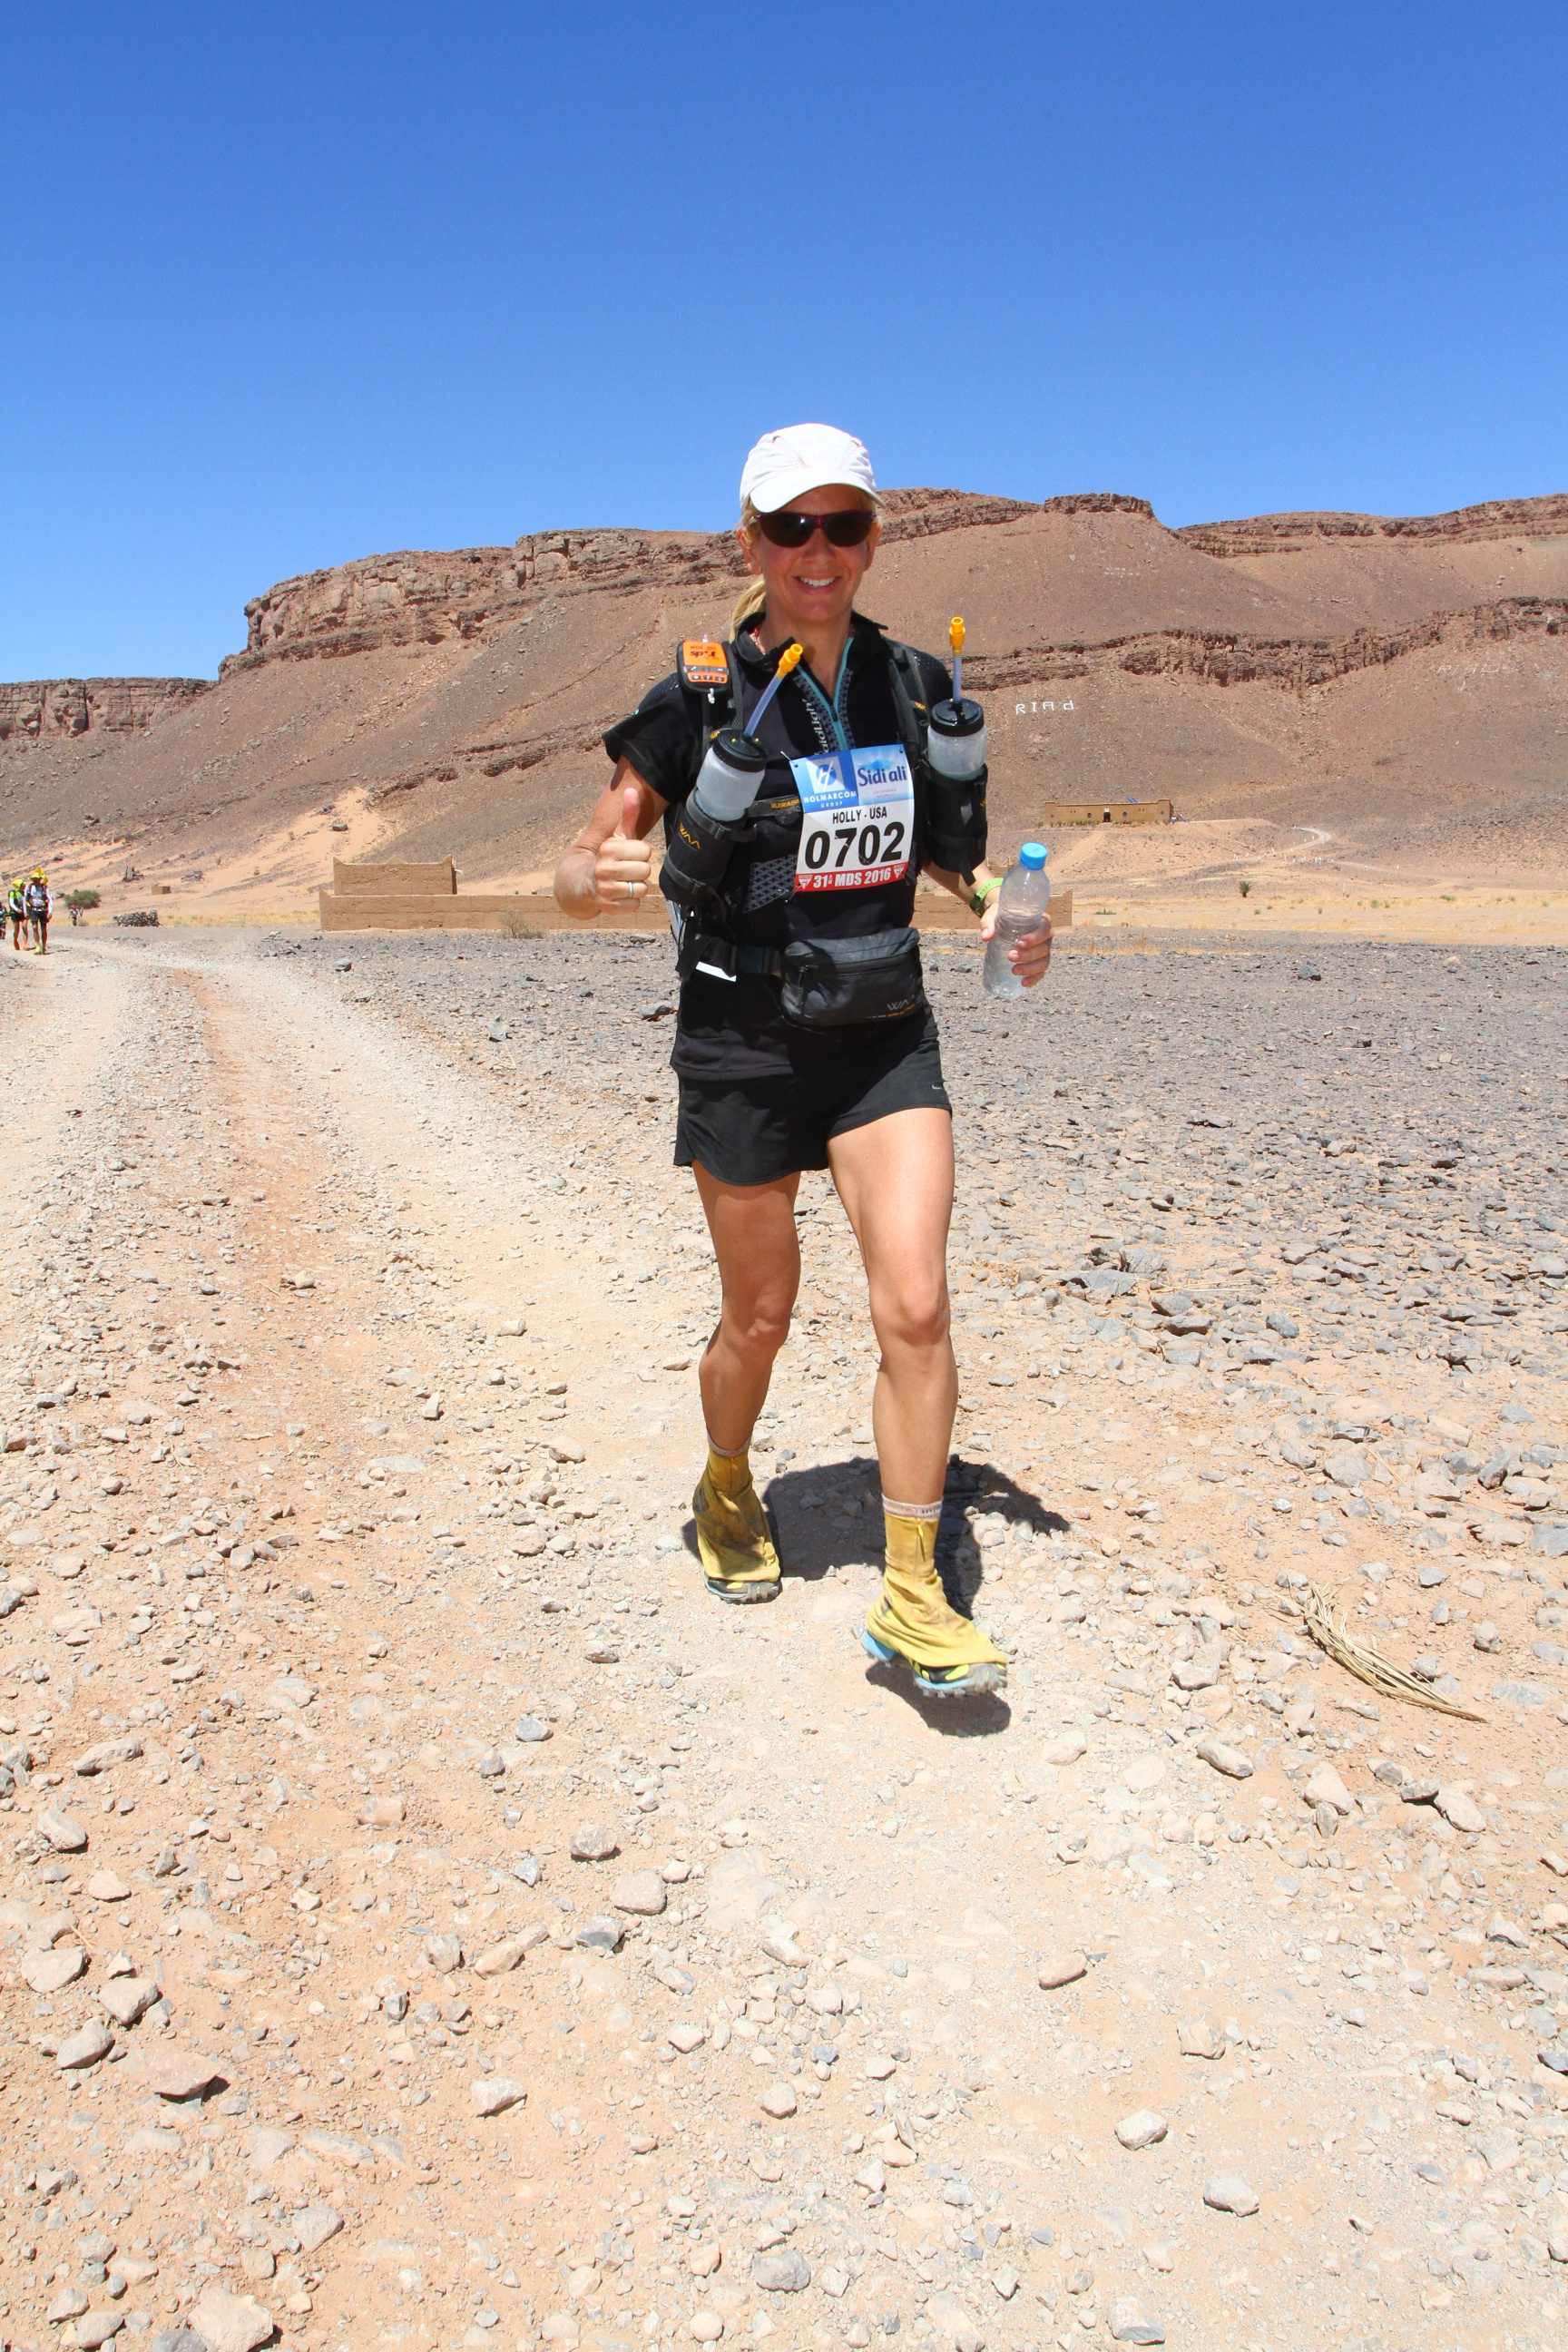 Holly Zimmerman says the long stage of the 251km Marathon des Sables has been her toughest challenge yet